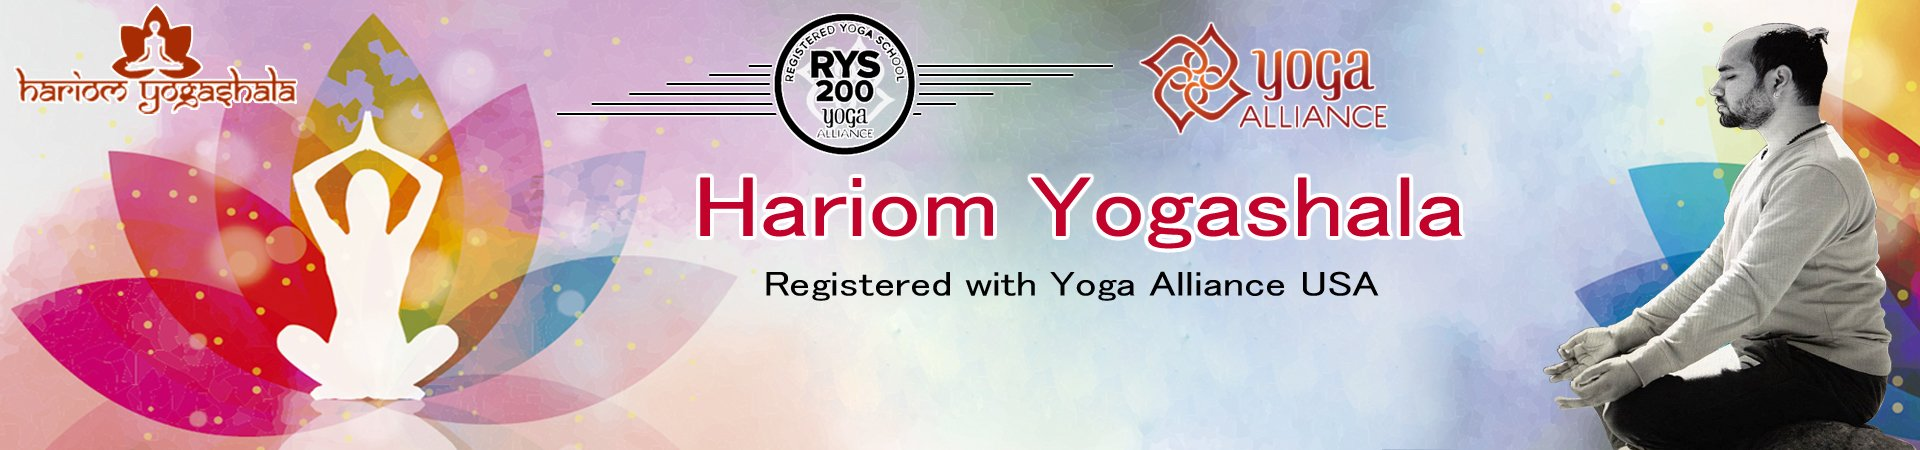 meditation-yoga-ttc-in-rishikesh